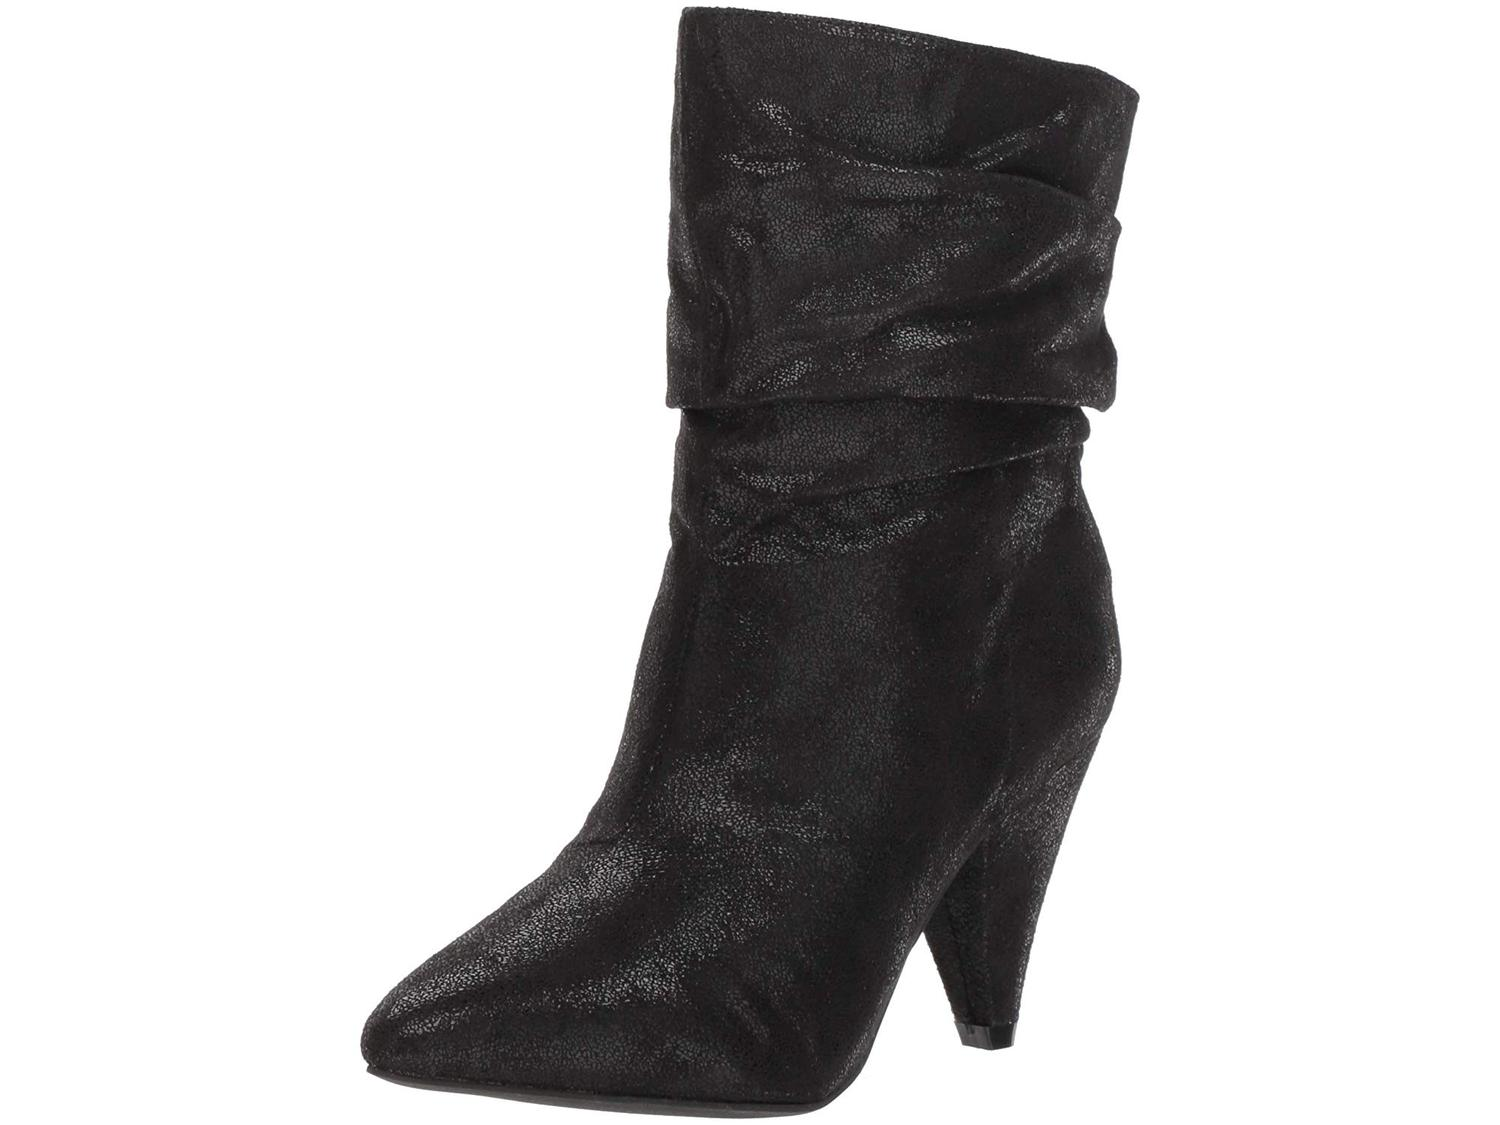 a35c784fb7c2 Report Womens Vera Pointed Toe Mid-Calf Fashion Boots